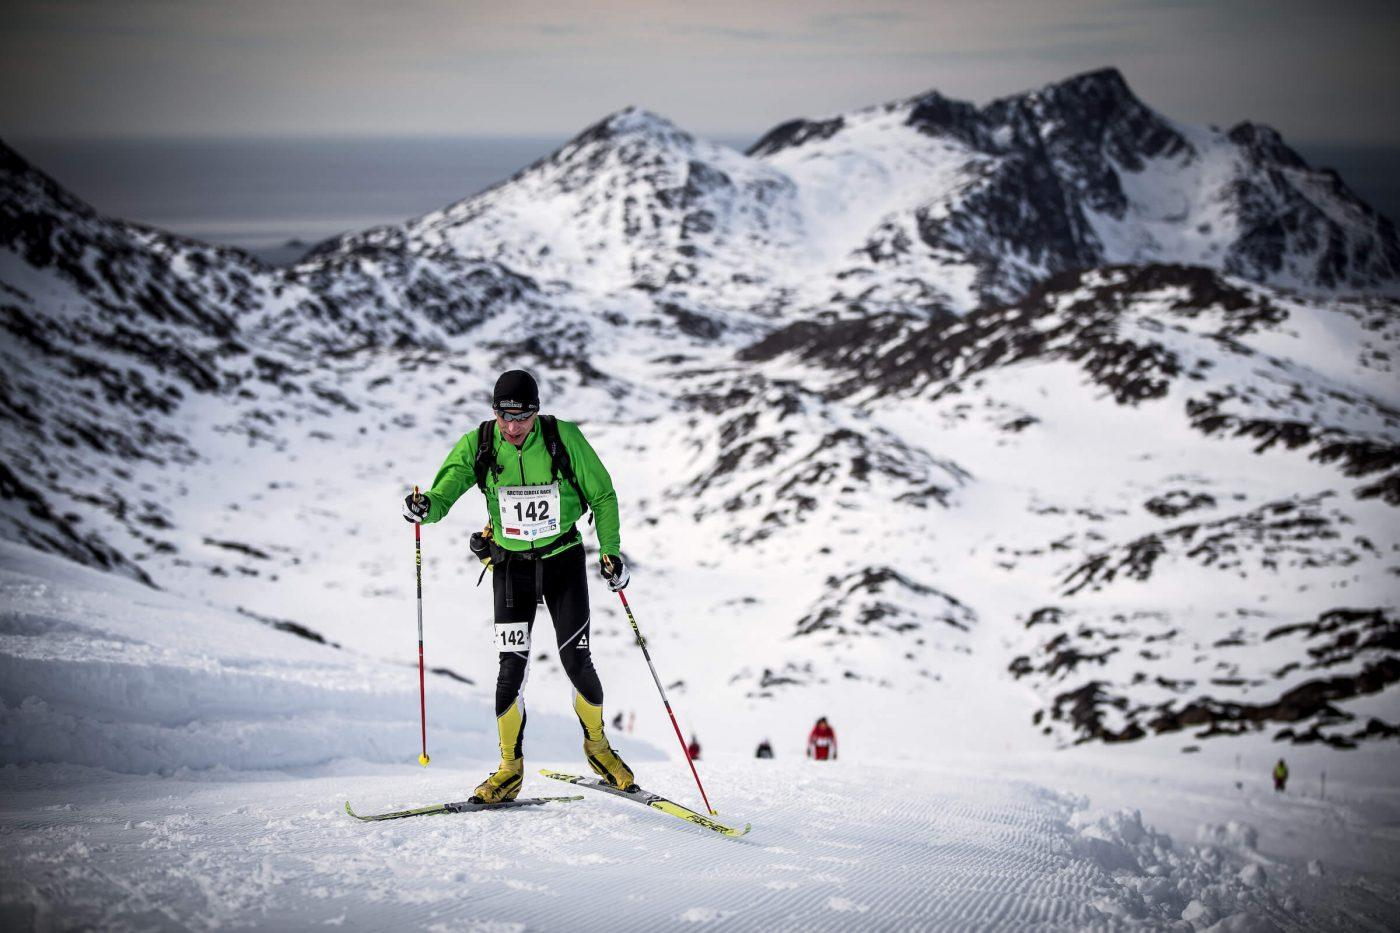 Competitor skiing uphill - Arctic Circle Race. Photo by Mads Pihl, Visit Greenland